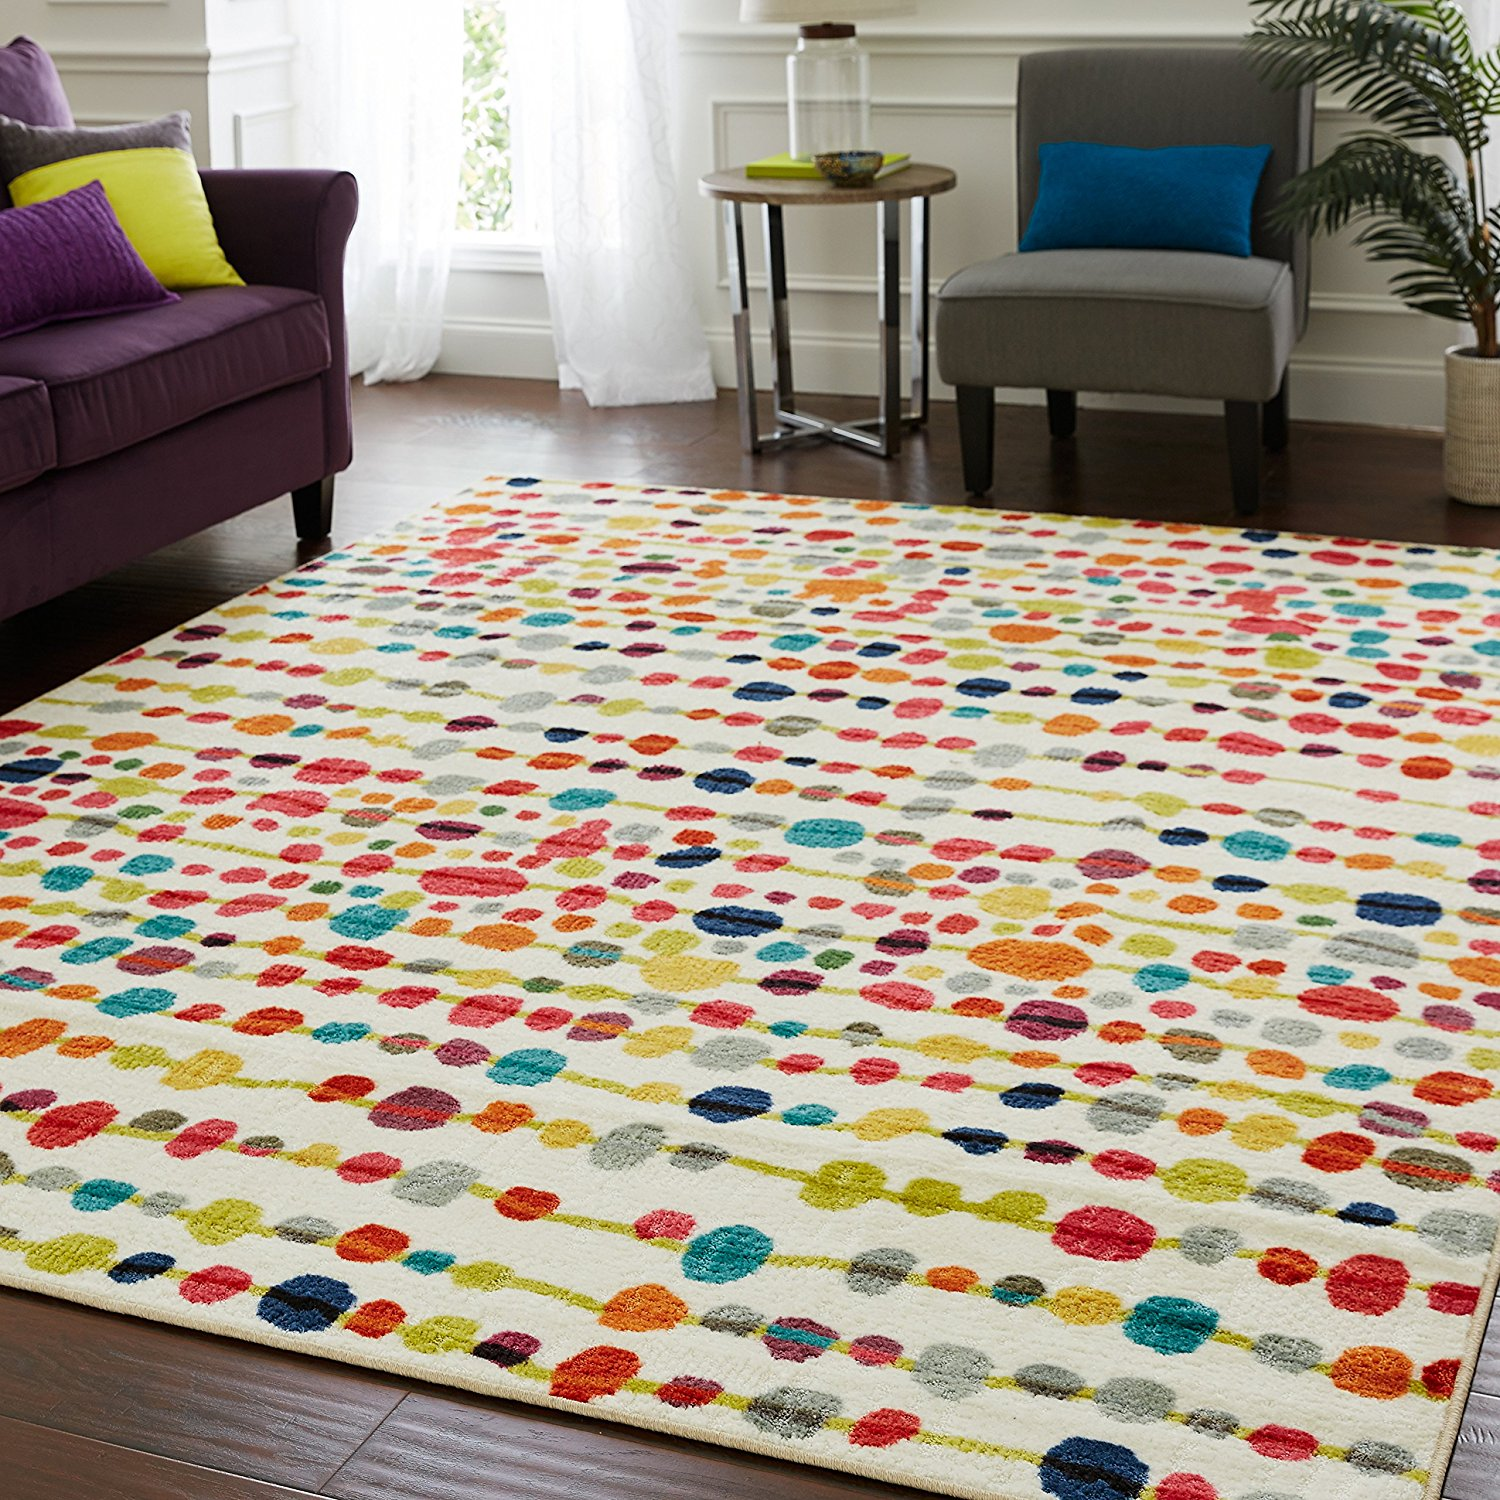 Delerus Dotted Printed Rug Thewowdecor